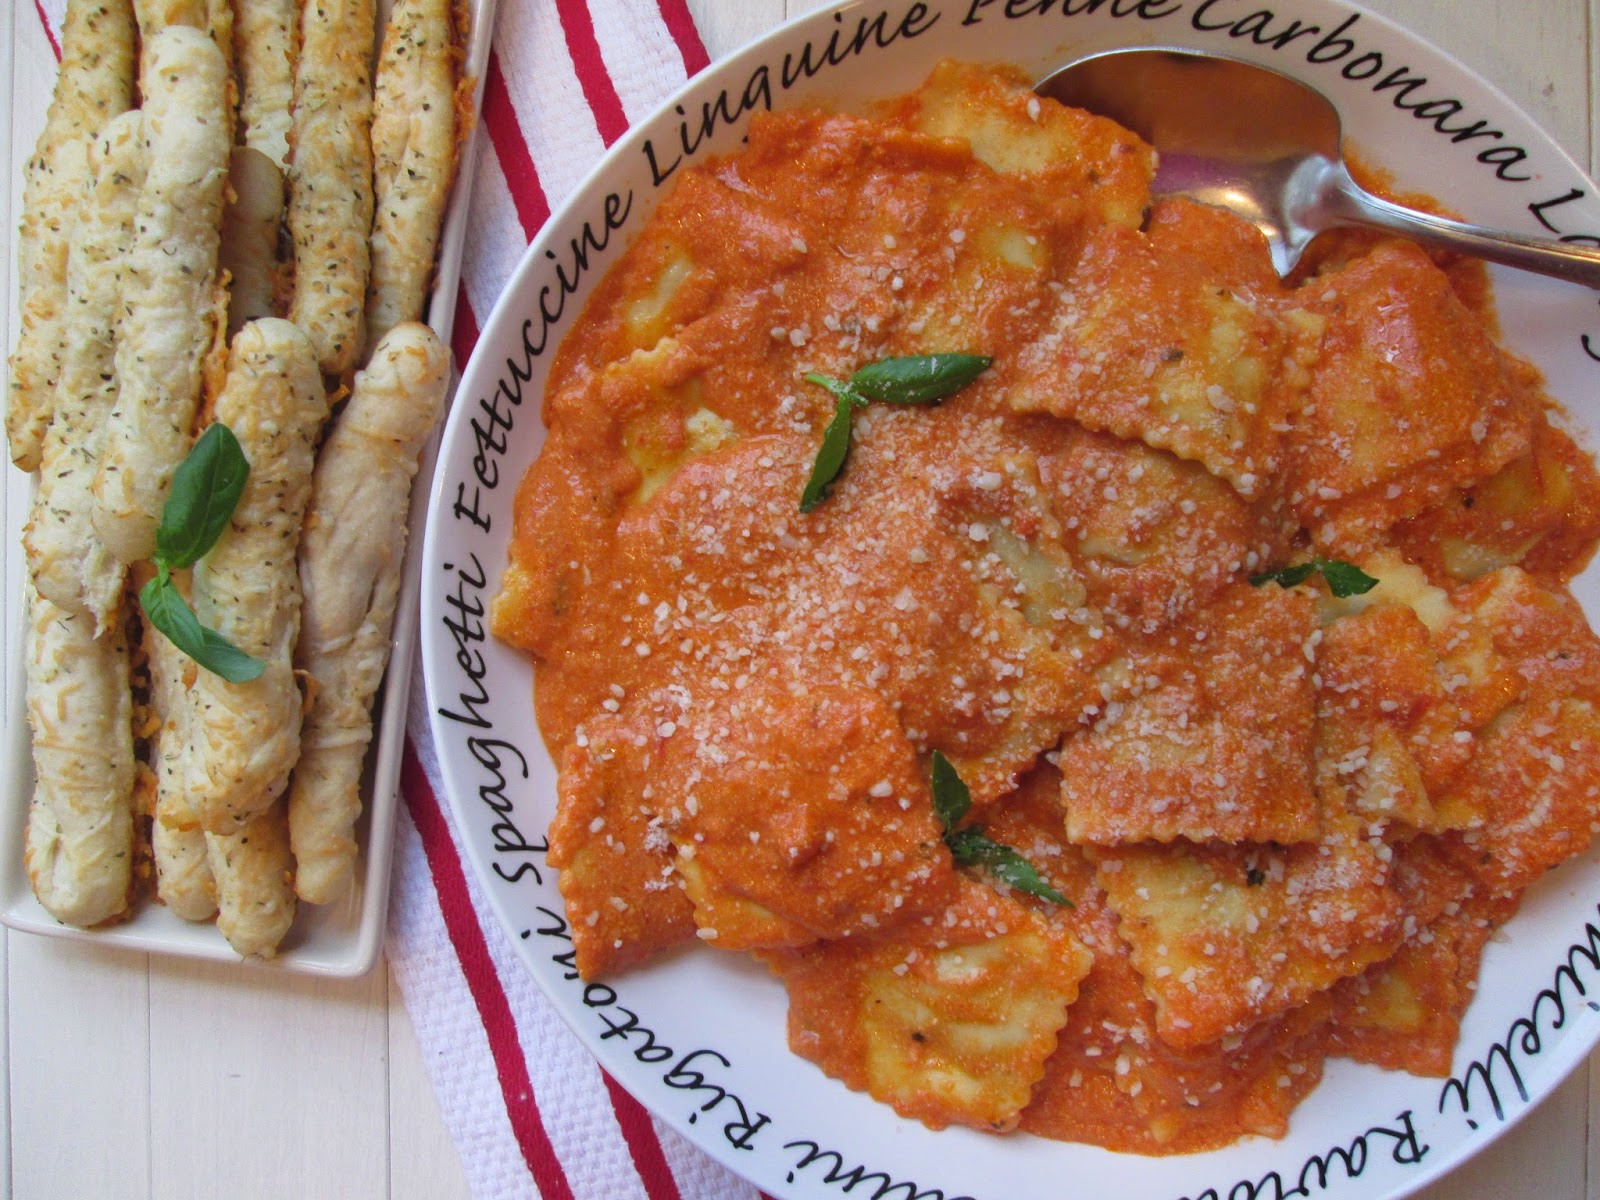 Ravioli with Creamy Tomato Sauce and Cheese and Rosemary Breadsticks